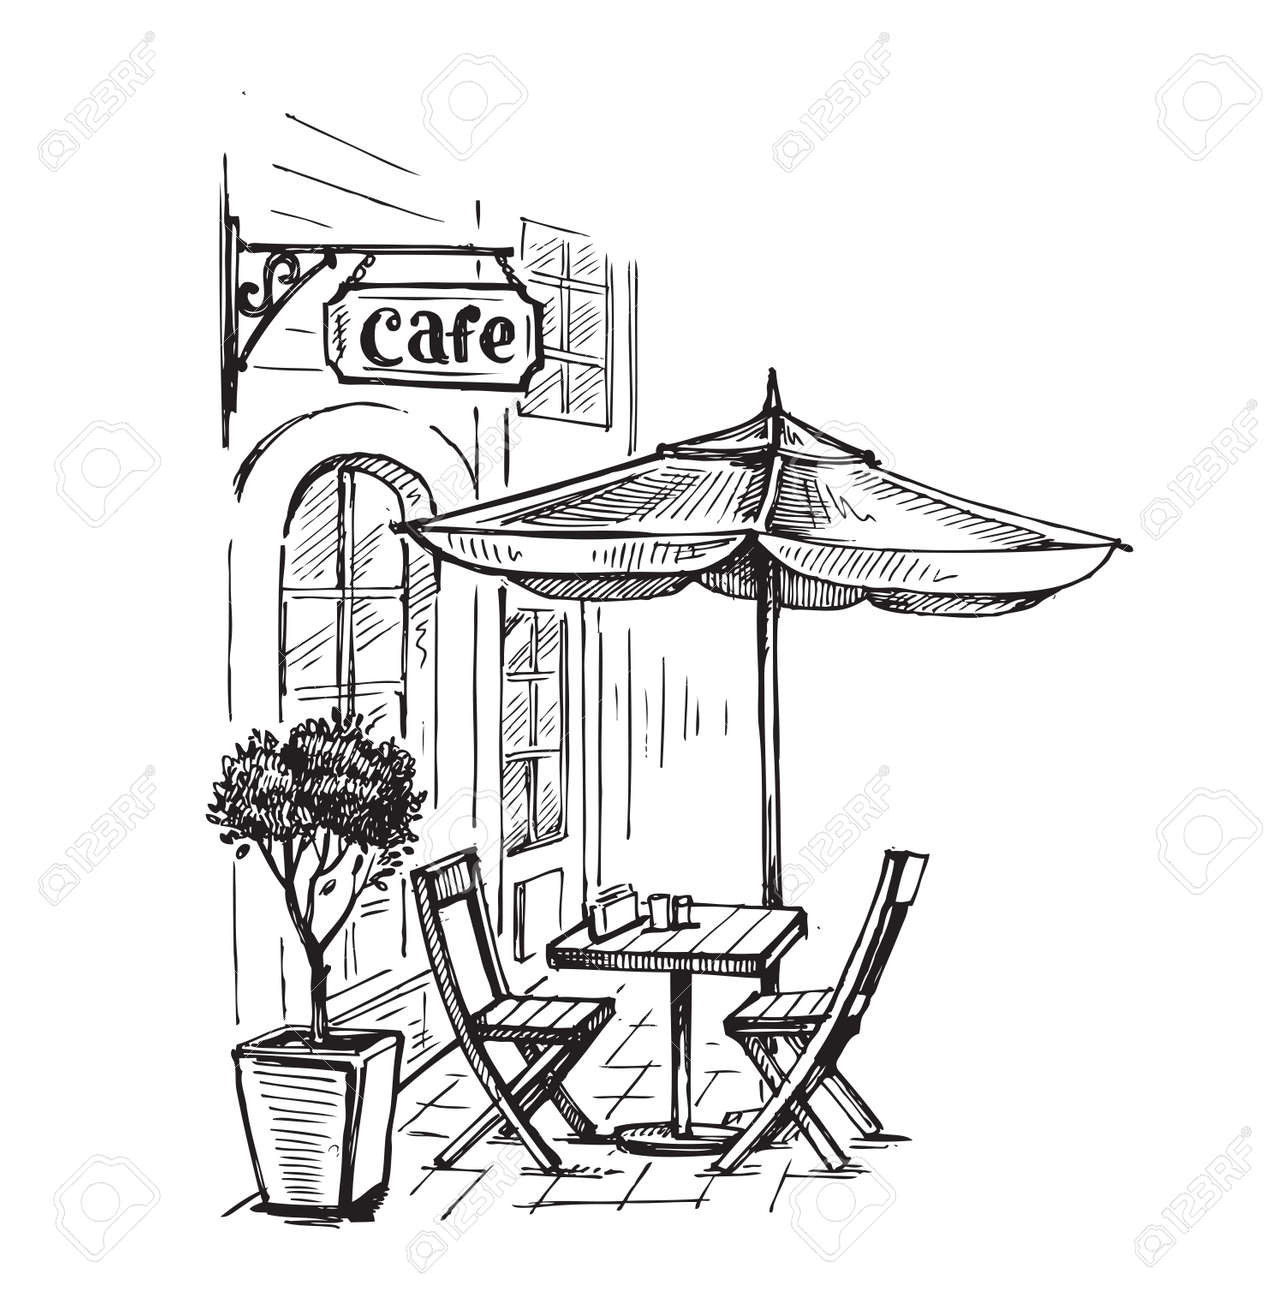 Street cafe in old town vector illustration - 66867898